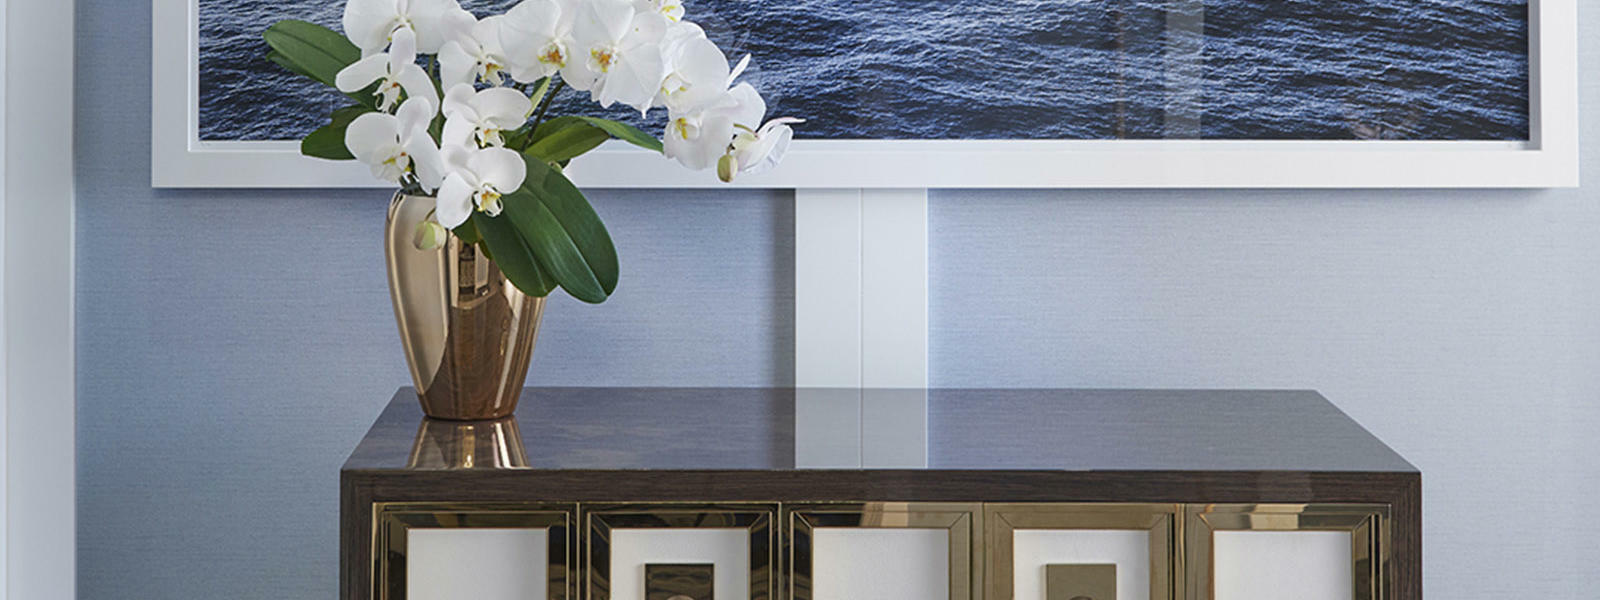 An image of sea hanging on the wall at Crown Hotel Perth